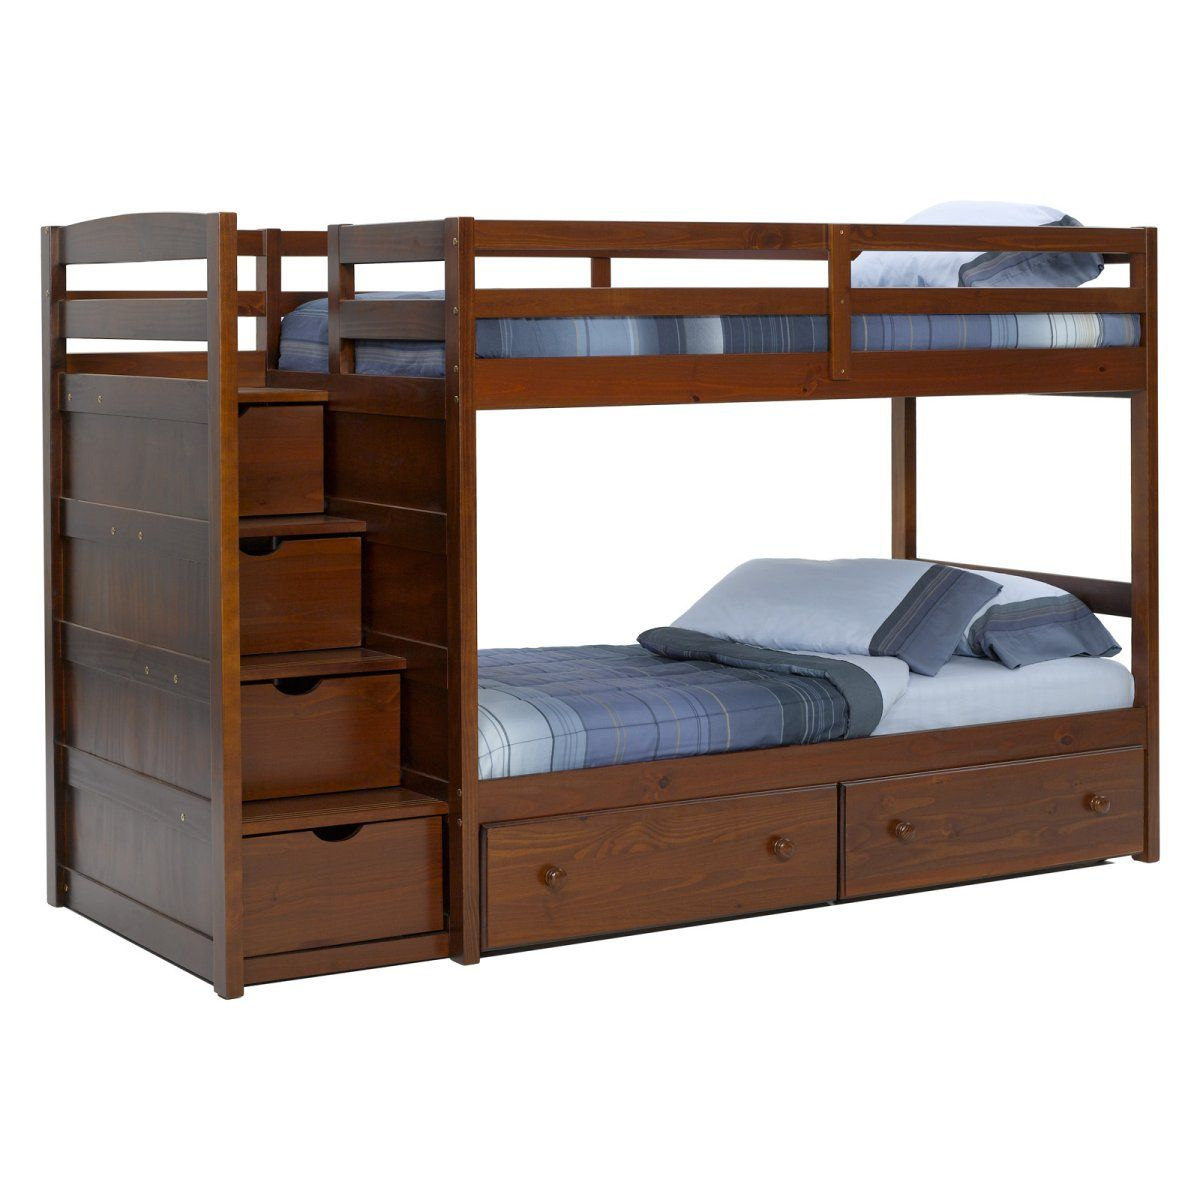 Pine Ridge Front Loading Stair Bunk Bed Chocolate Twin Over Twin